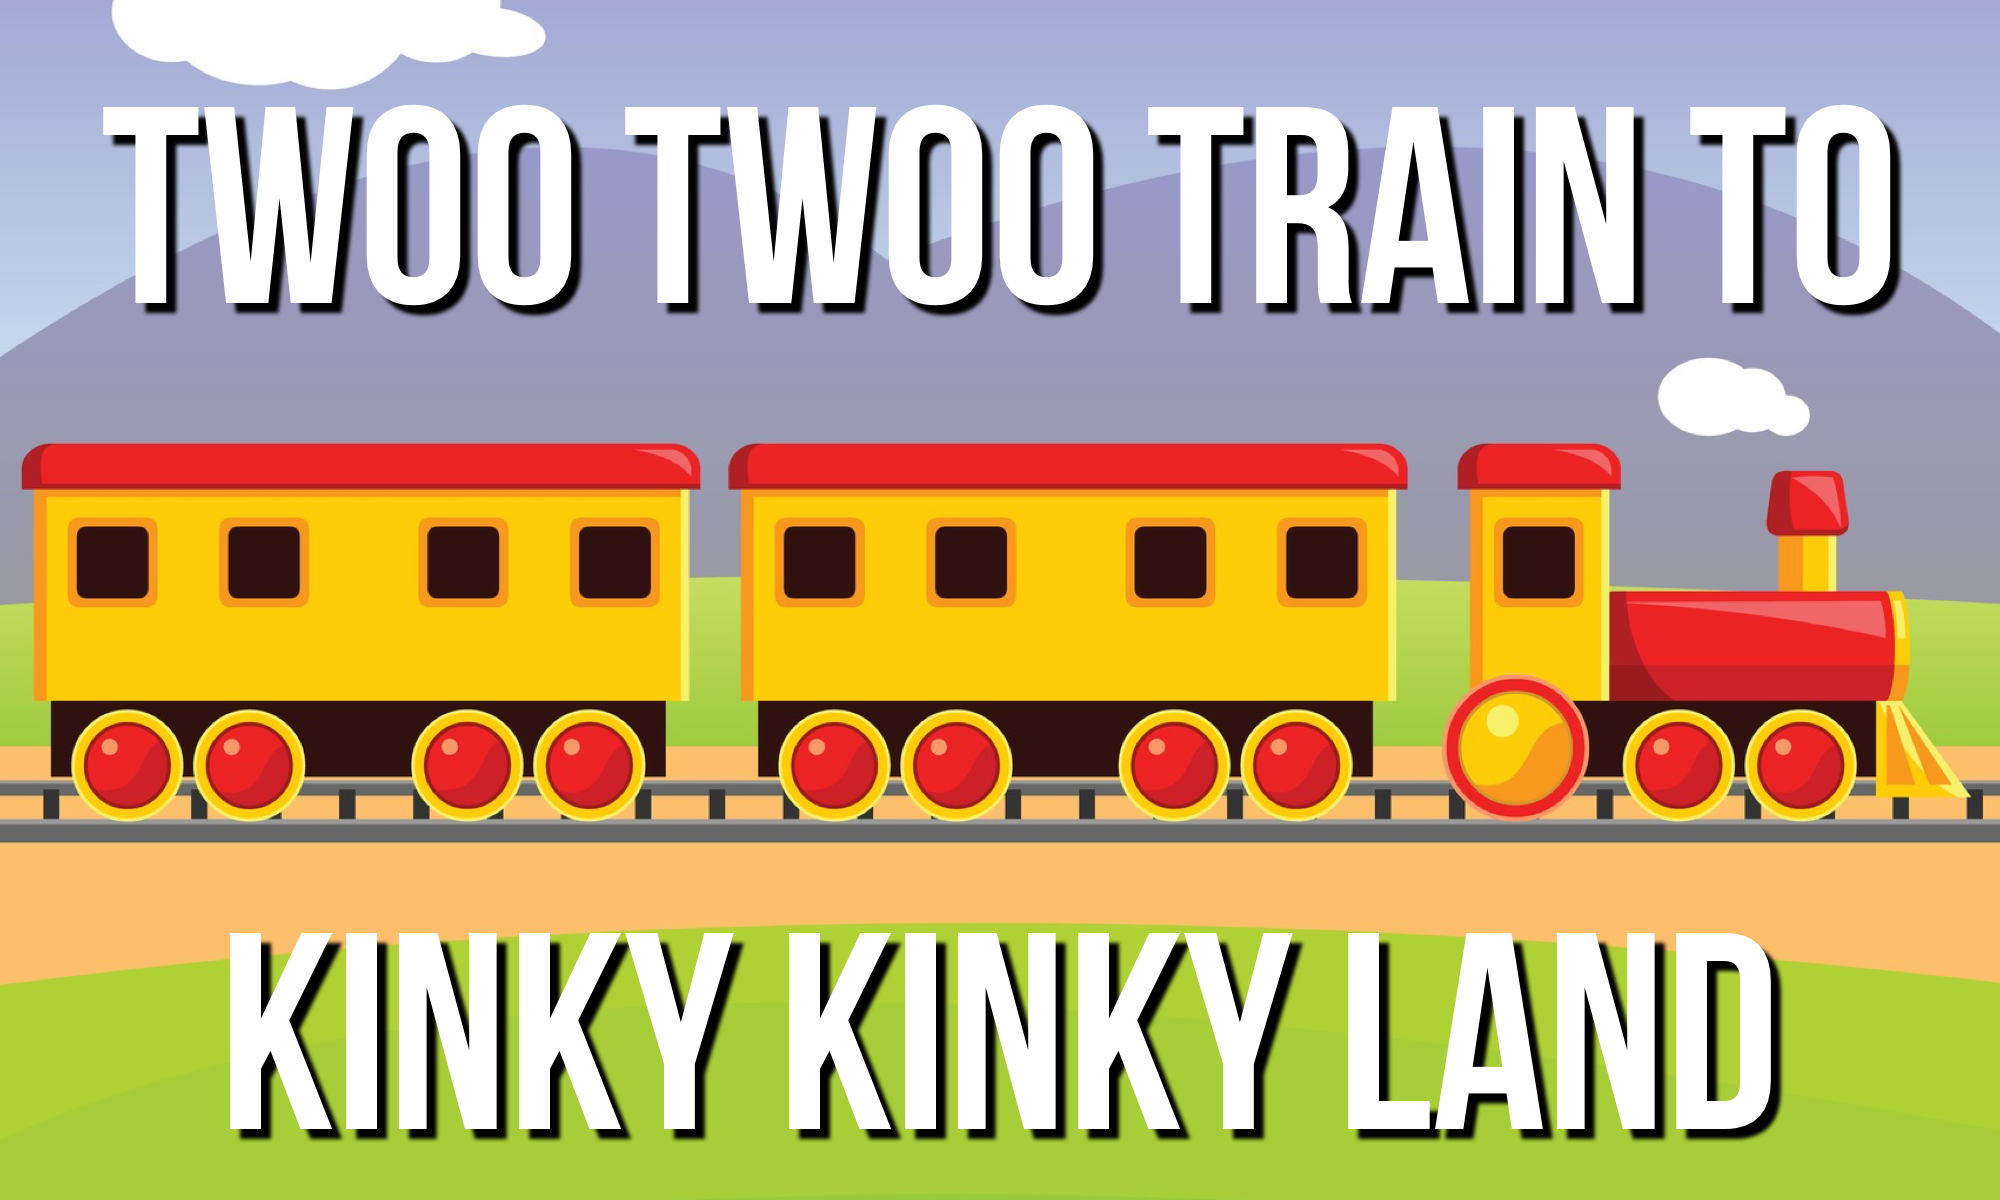 Twoo Twoo Train To Kinky Kinky Land